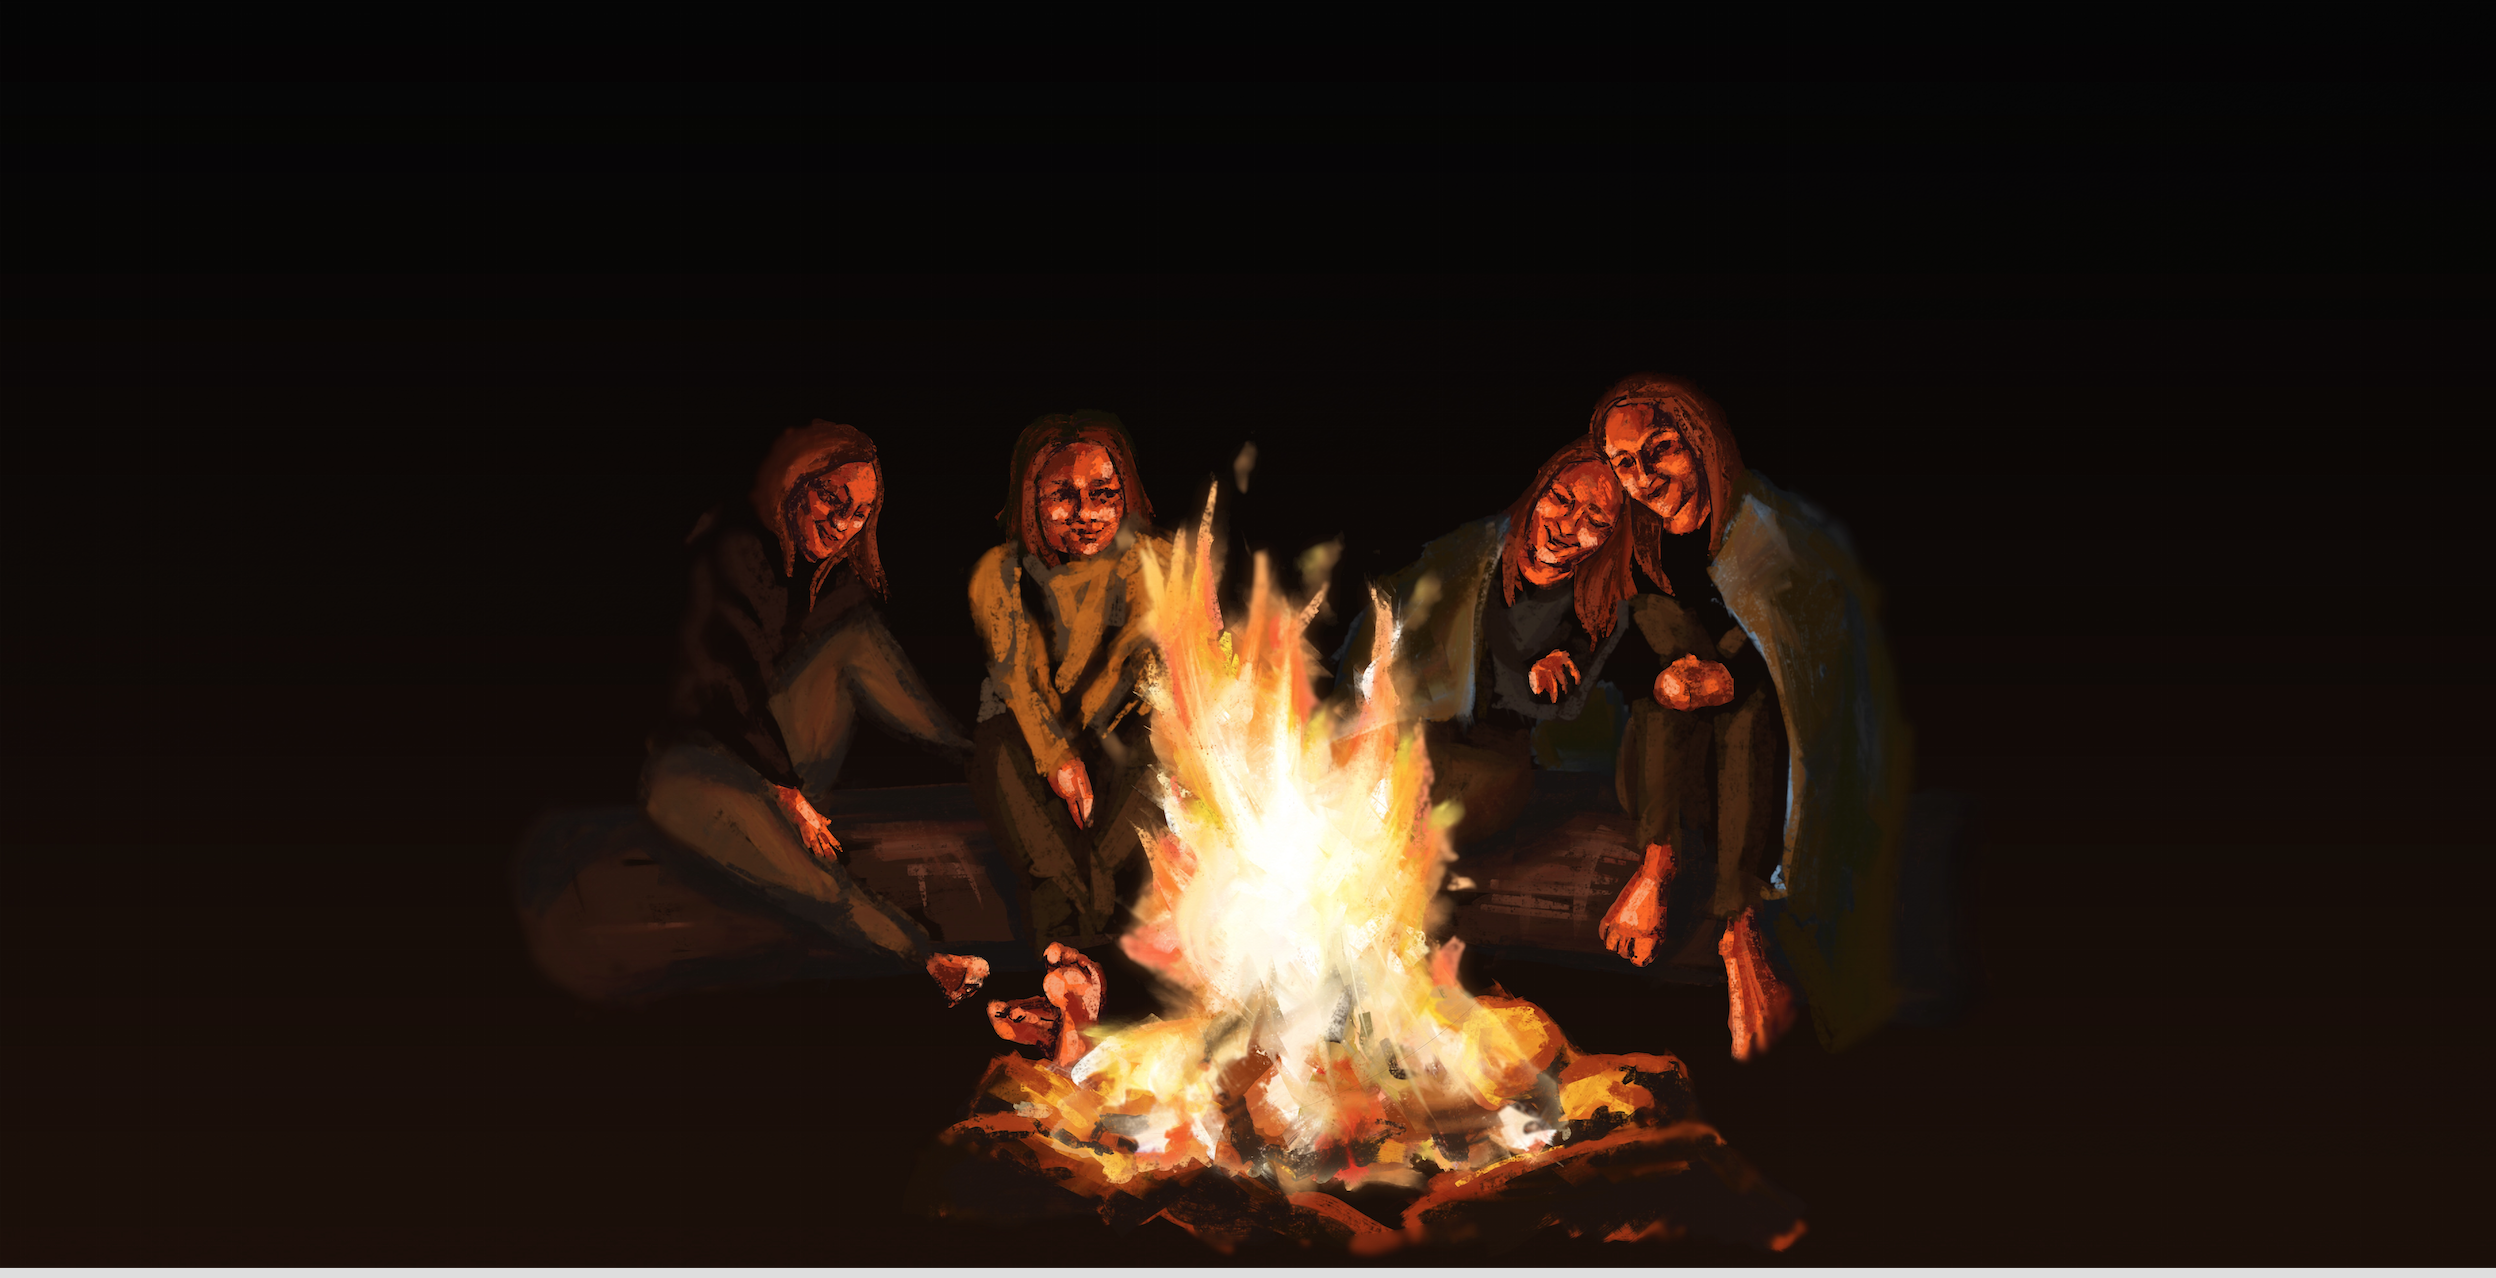 Campfire Digital Painting